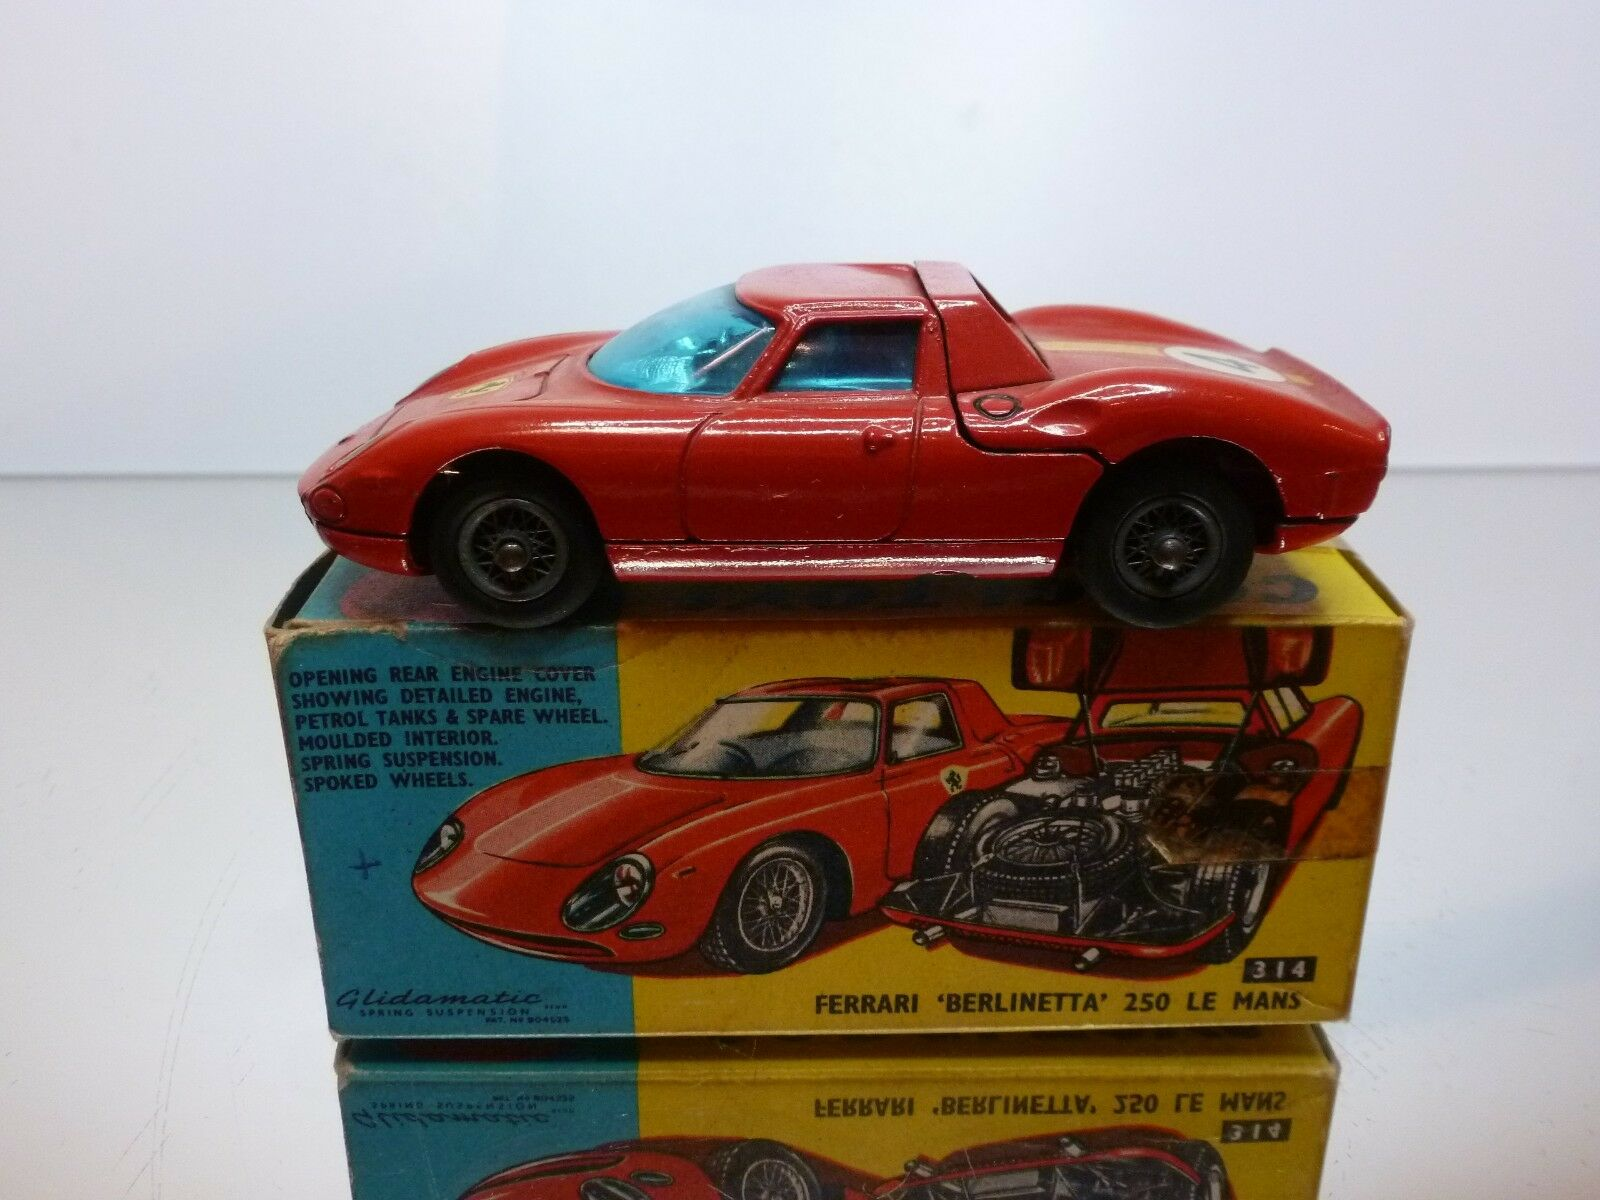 CORGI TOYS 314 FERRARI BERLINETTA 250 LE MANS - rouge 1 43 - VERY GOOD IN BOX